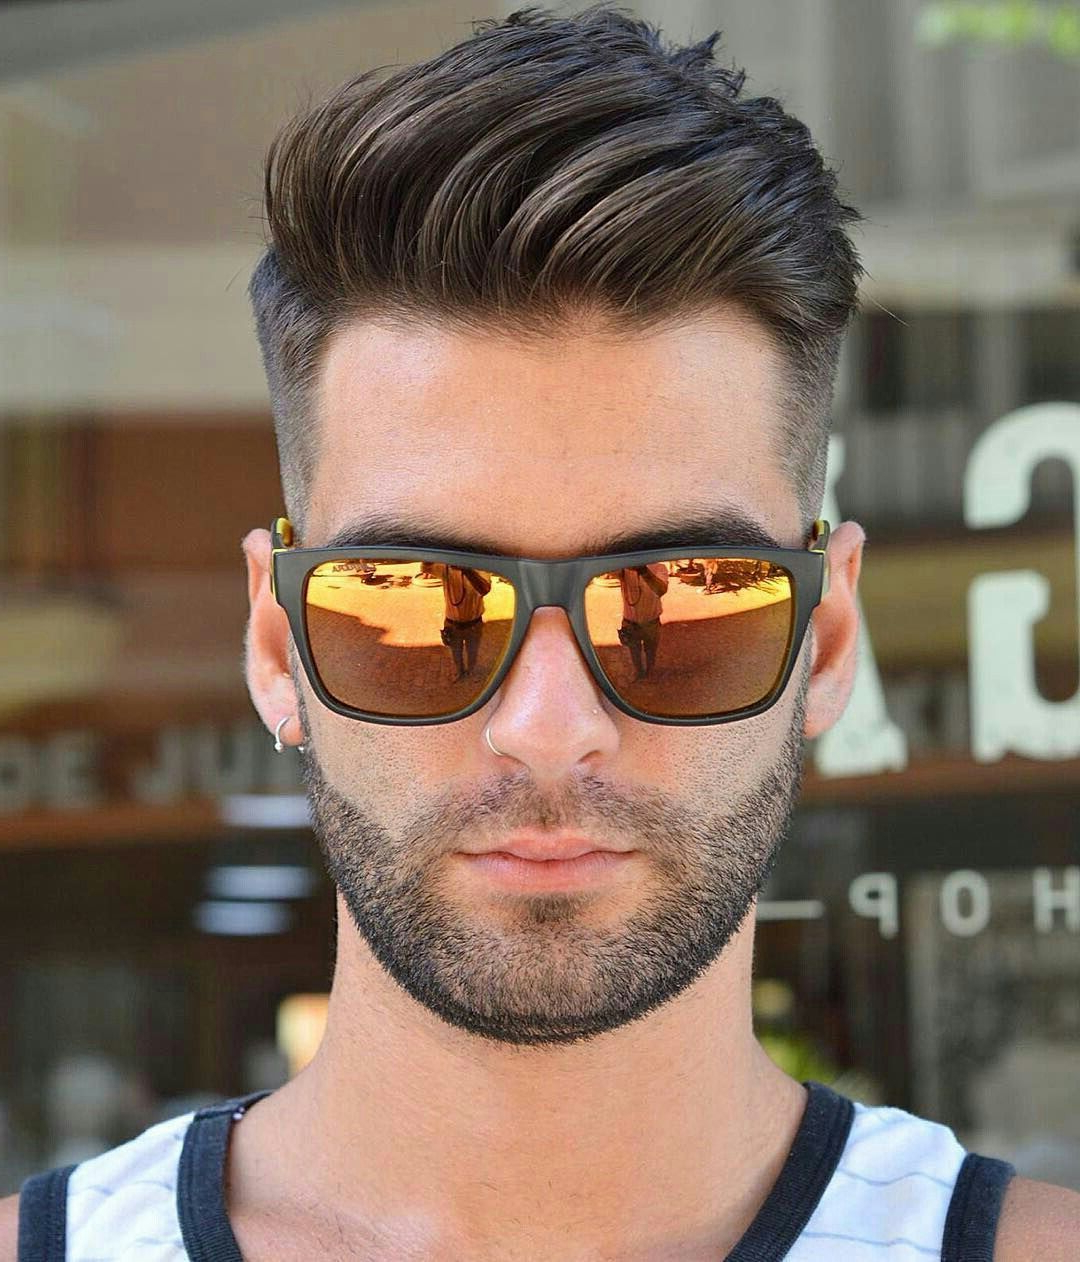 Hair Styles, Haircuts For Men (View 6 of 20)